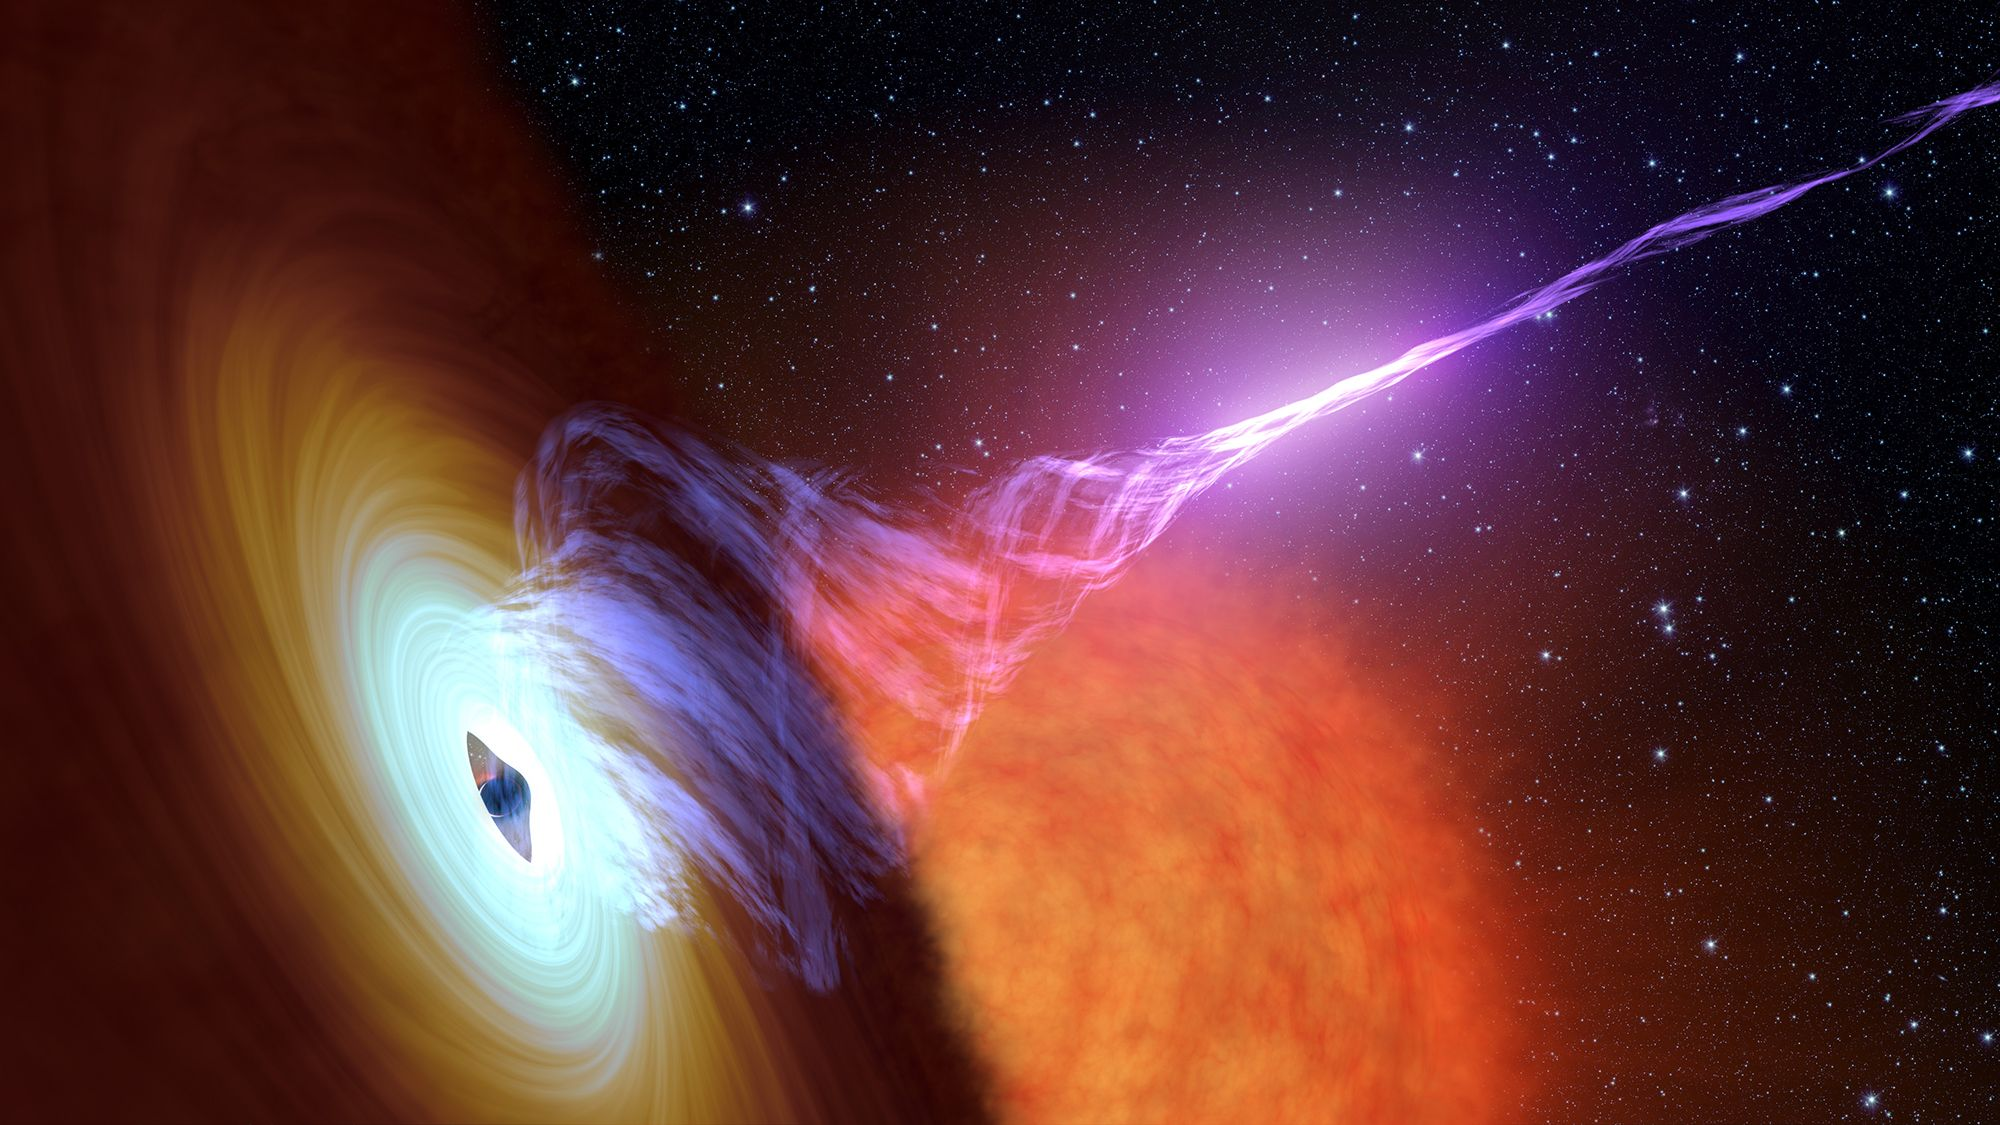 NASA is watching black holes shoot plasma rays into space as they eat stars